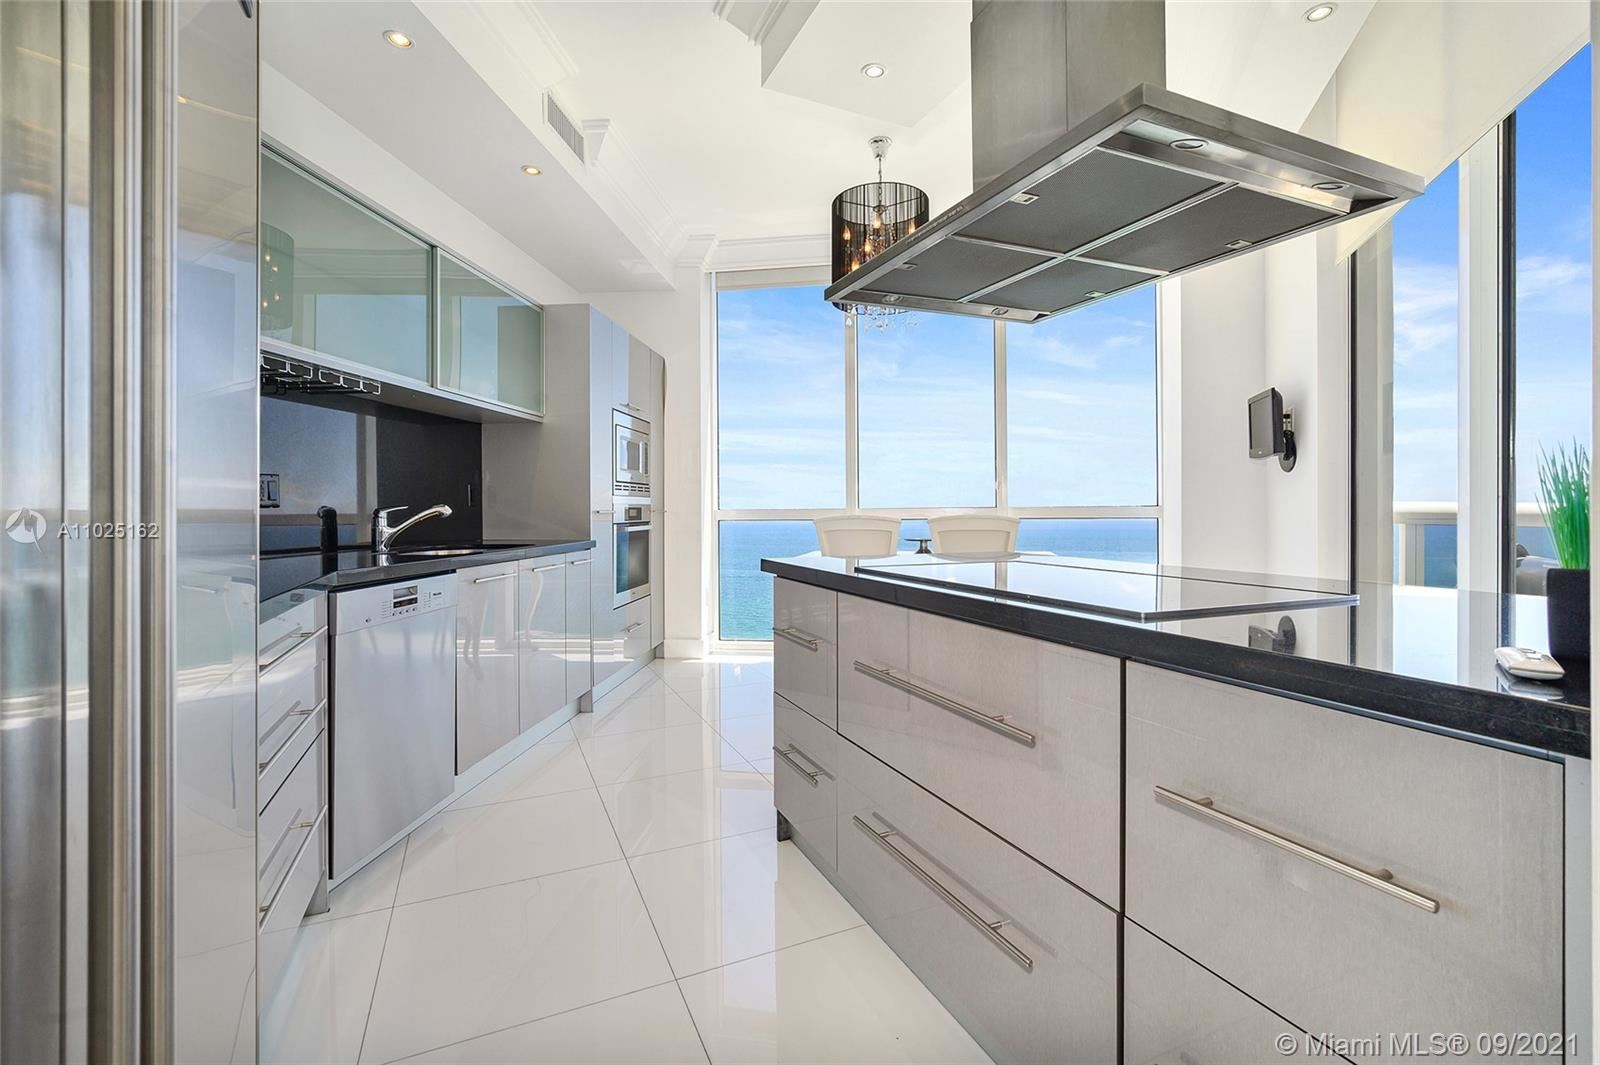 18201 Collins Ave #3609, Sunny Isles, FL 33160 - #: A11025162